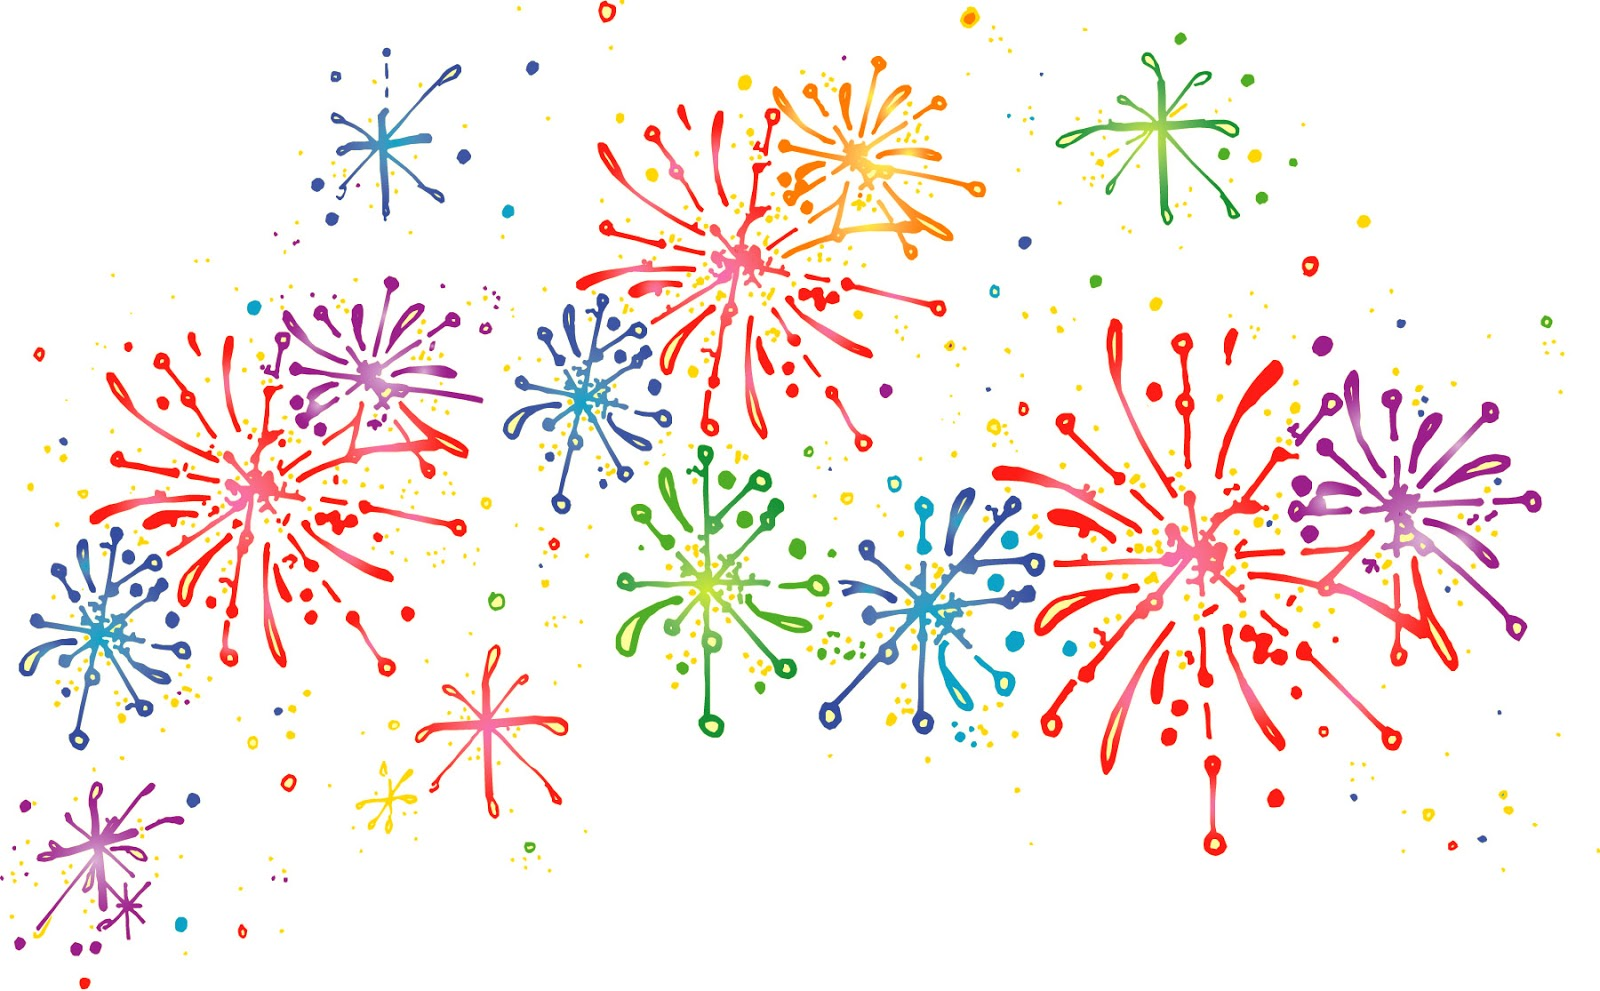 Fireworks Clipart For ... Tuesday, Janua-Fireworks clipart for ... Tuesday, January 1, 2013-12